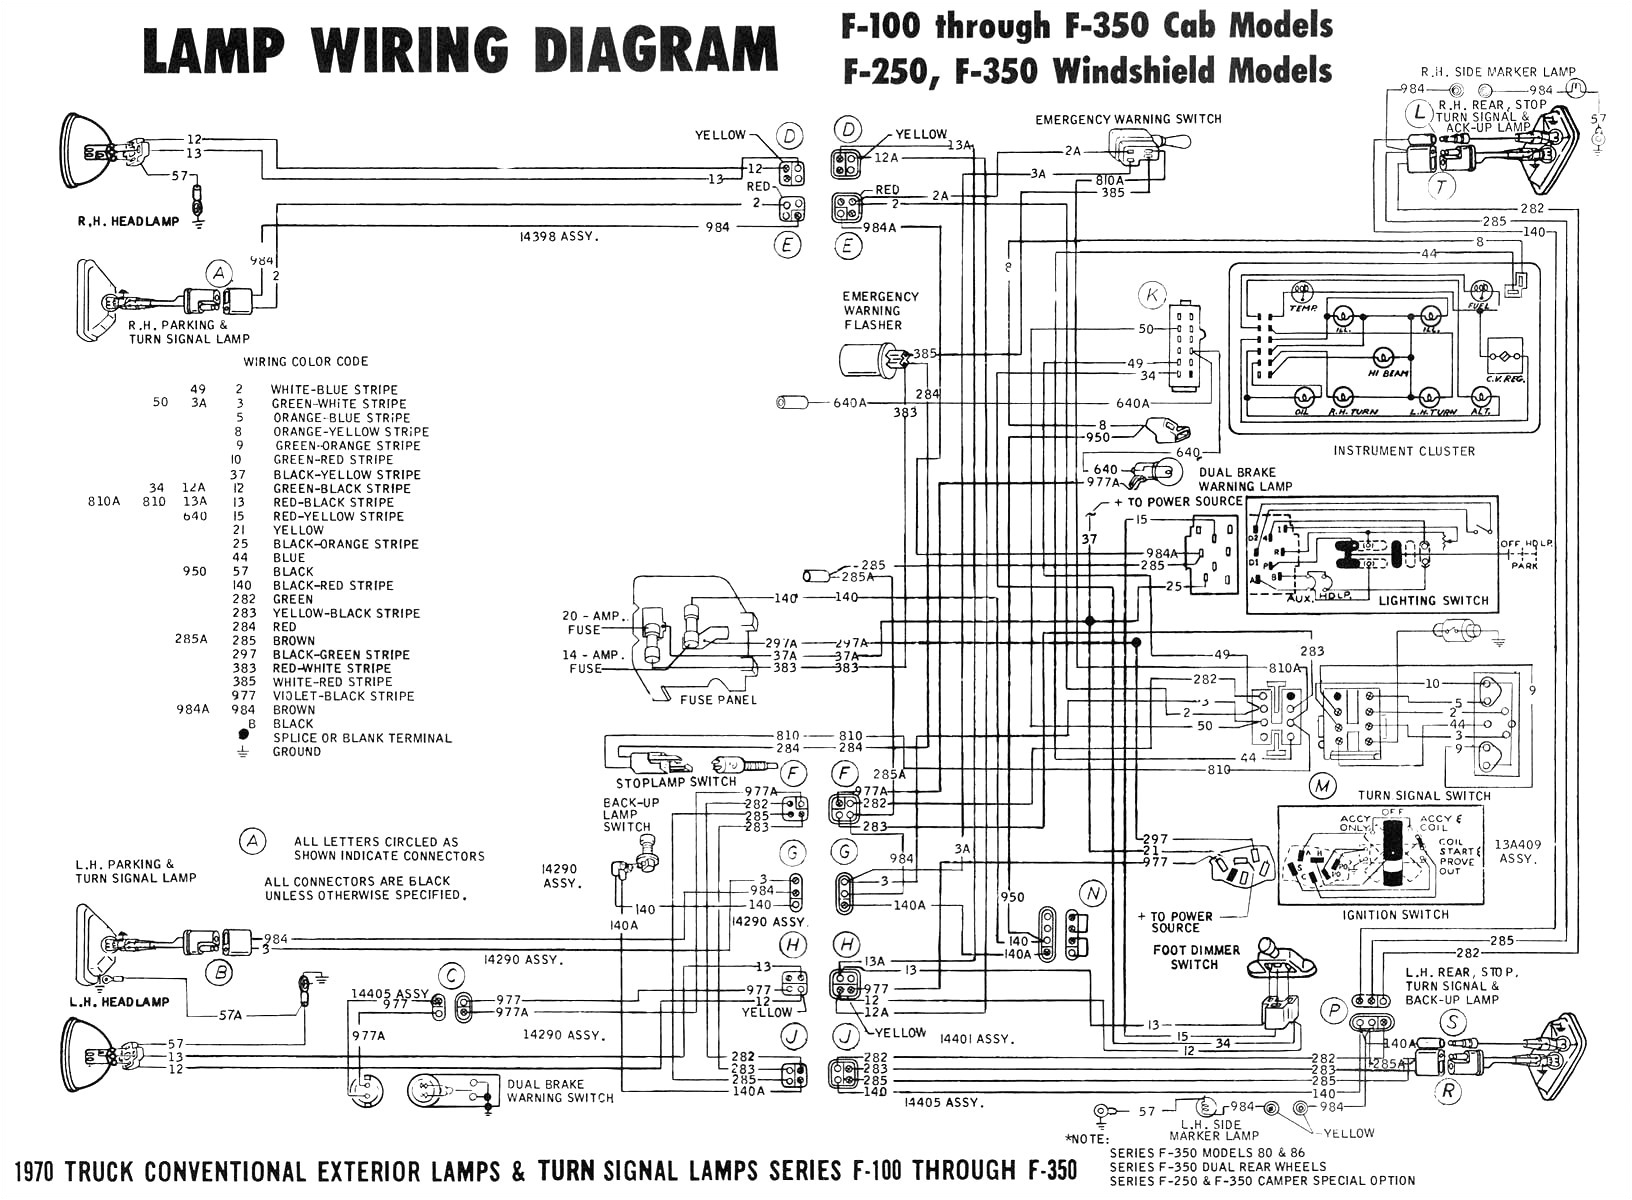 1990 ford f 350 wiring diagram ignition wiring diagram paper ford f350 wiring diagram for trailer plug ford f350 wire diagram